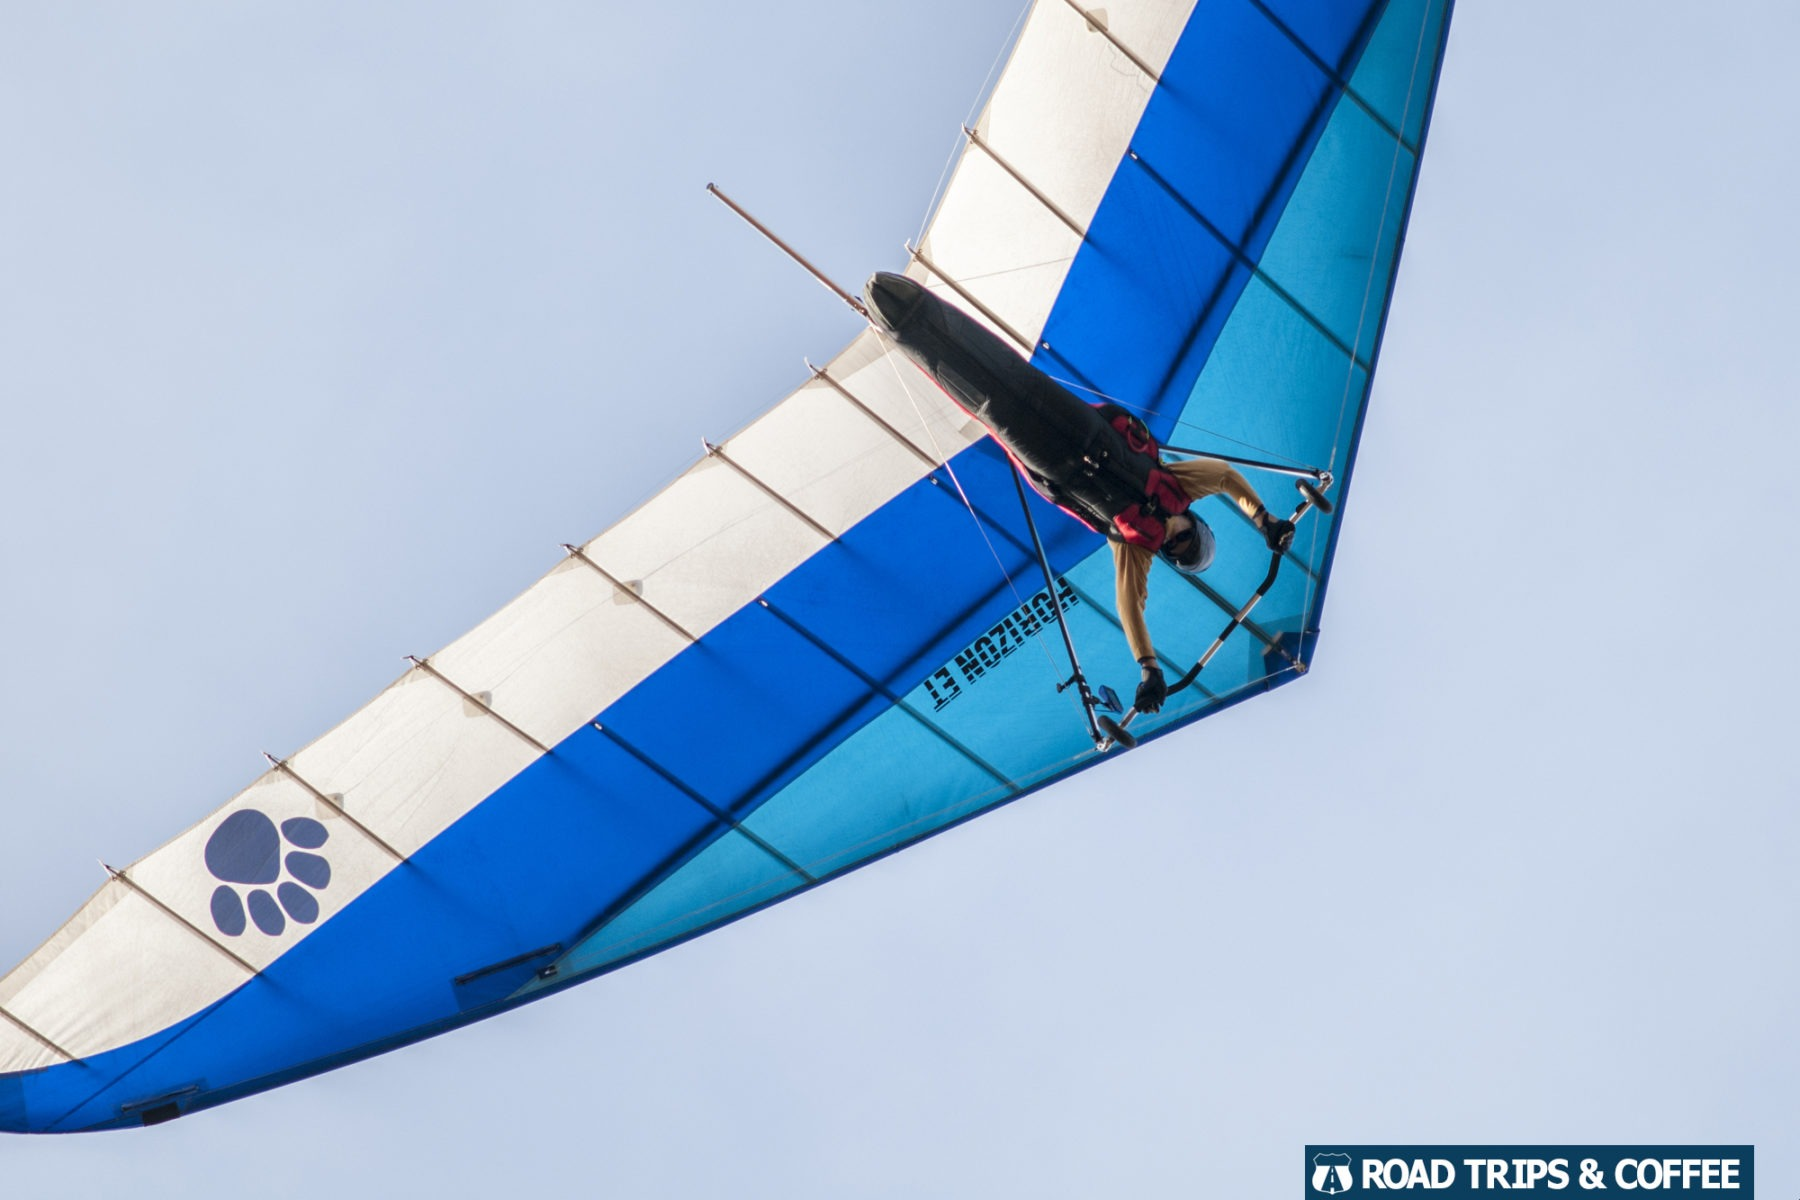 A hang glider soars overhead at Lookout Mountain, Georgia